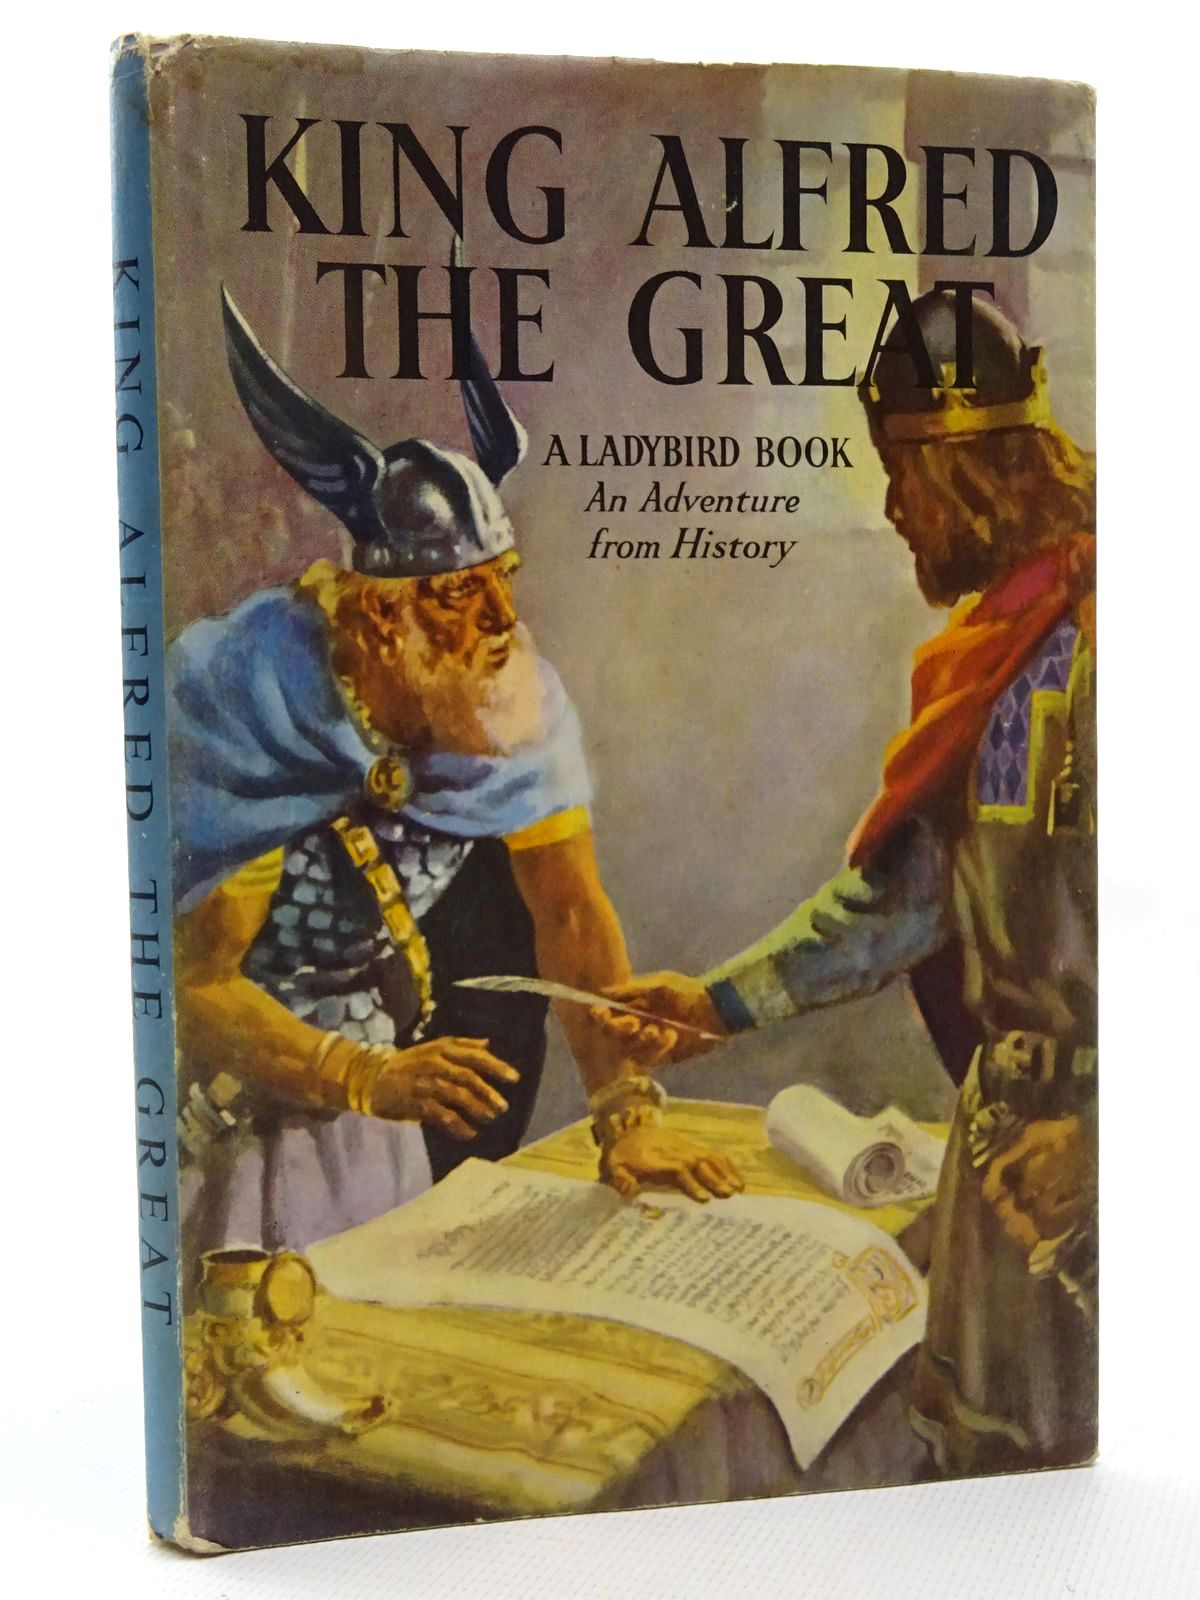 Photo of KING ALFRED THE GREAT written by Peach, L. Du Garde illustrated by Kenney, John published by Wills & Hepworth Ltd. (STOCK CODE: 2124342)  for sale by Stella & Rose's Books